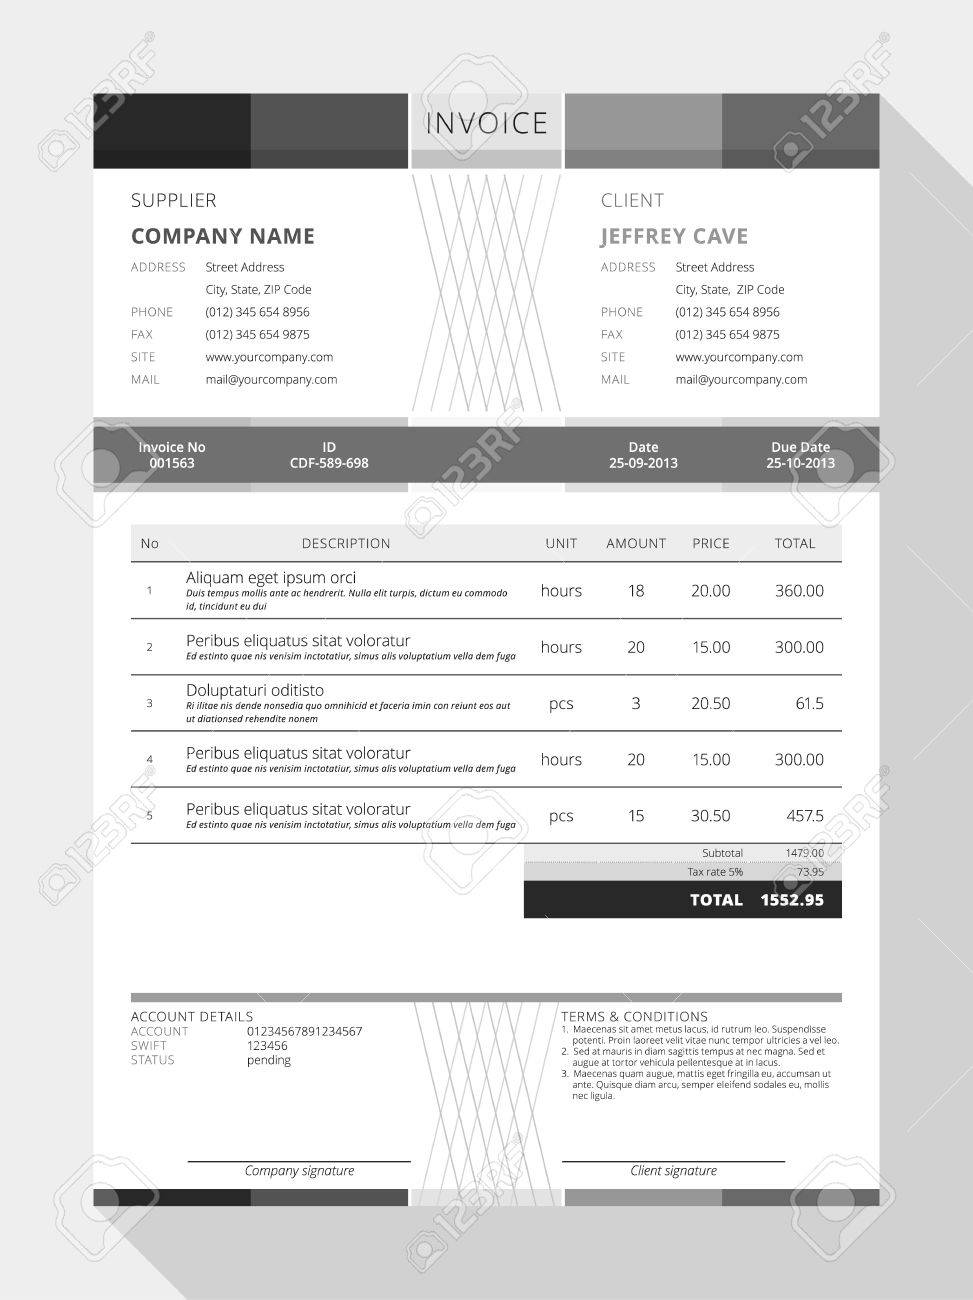 Poorboyzjeepclubus  Marvellous Design An Invoice  Professional Graphic Design Invoice  With Fair Vector Customizable Invoice Form Template Design Vector   Design An Invoice With Alluring Invoice Php Script Also Invoice For Web Design In Addition Tax Invoice Excel Format And Bb Invoicing As Well As Invoice Factoring Uk Additionally Consular Invoice Format From Happytomco With Poorboyzjeepclubus  Fair Design An Invoice  Professional Graphic Design Invoice  With Alluring Vector Customizable Invoice Form Template Design Vector   Design An Invoice And Marvellous Invoice Php Script Also Invoice For Web Design In Addition Tax Invoice Excel Format From Happytomco